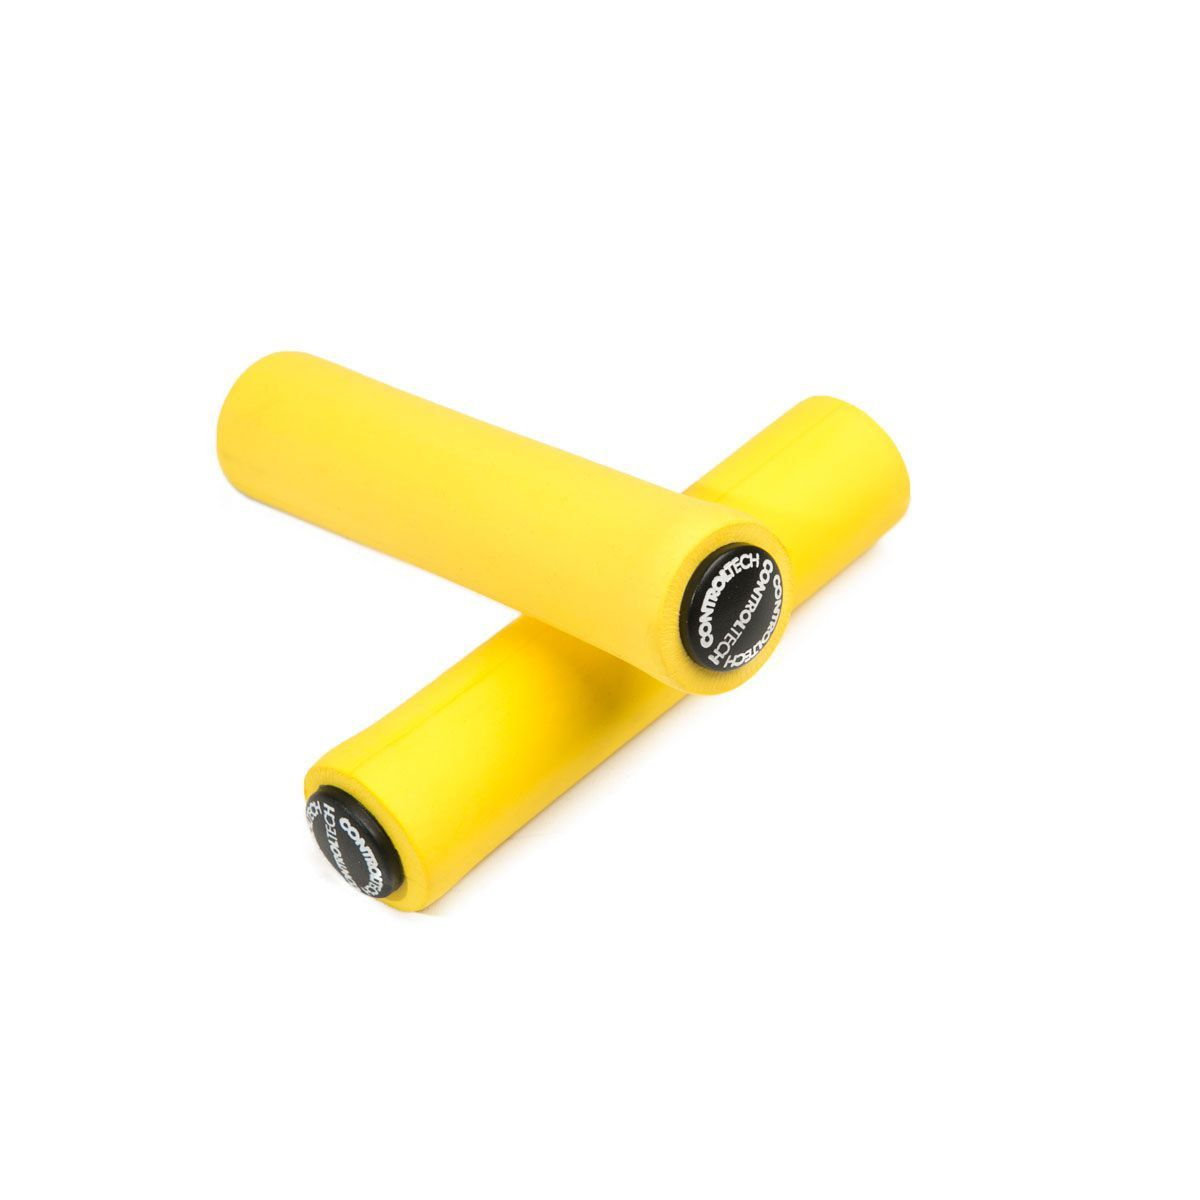 Manopla ControlTech Silicone MTB GP-16 - 130mm Amarelo